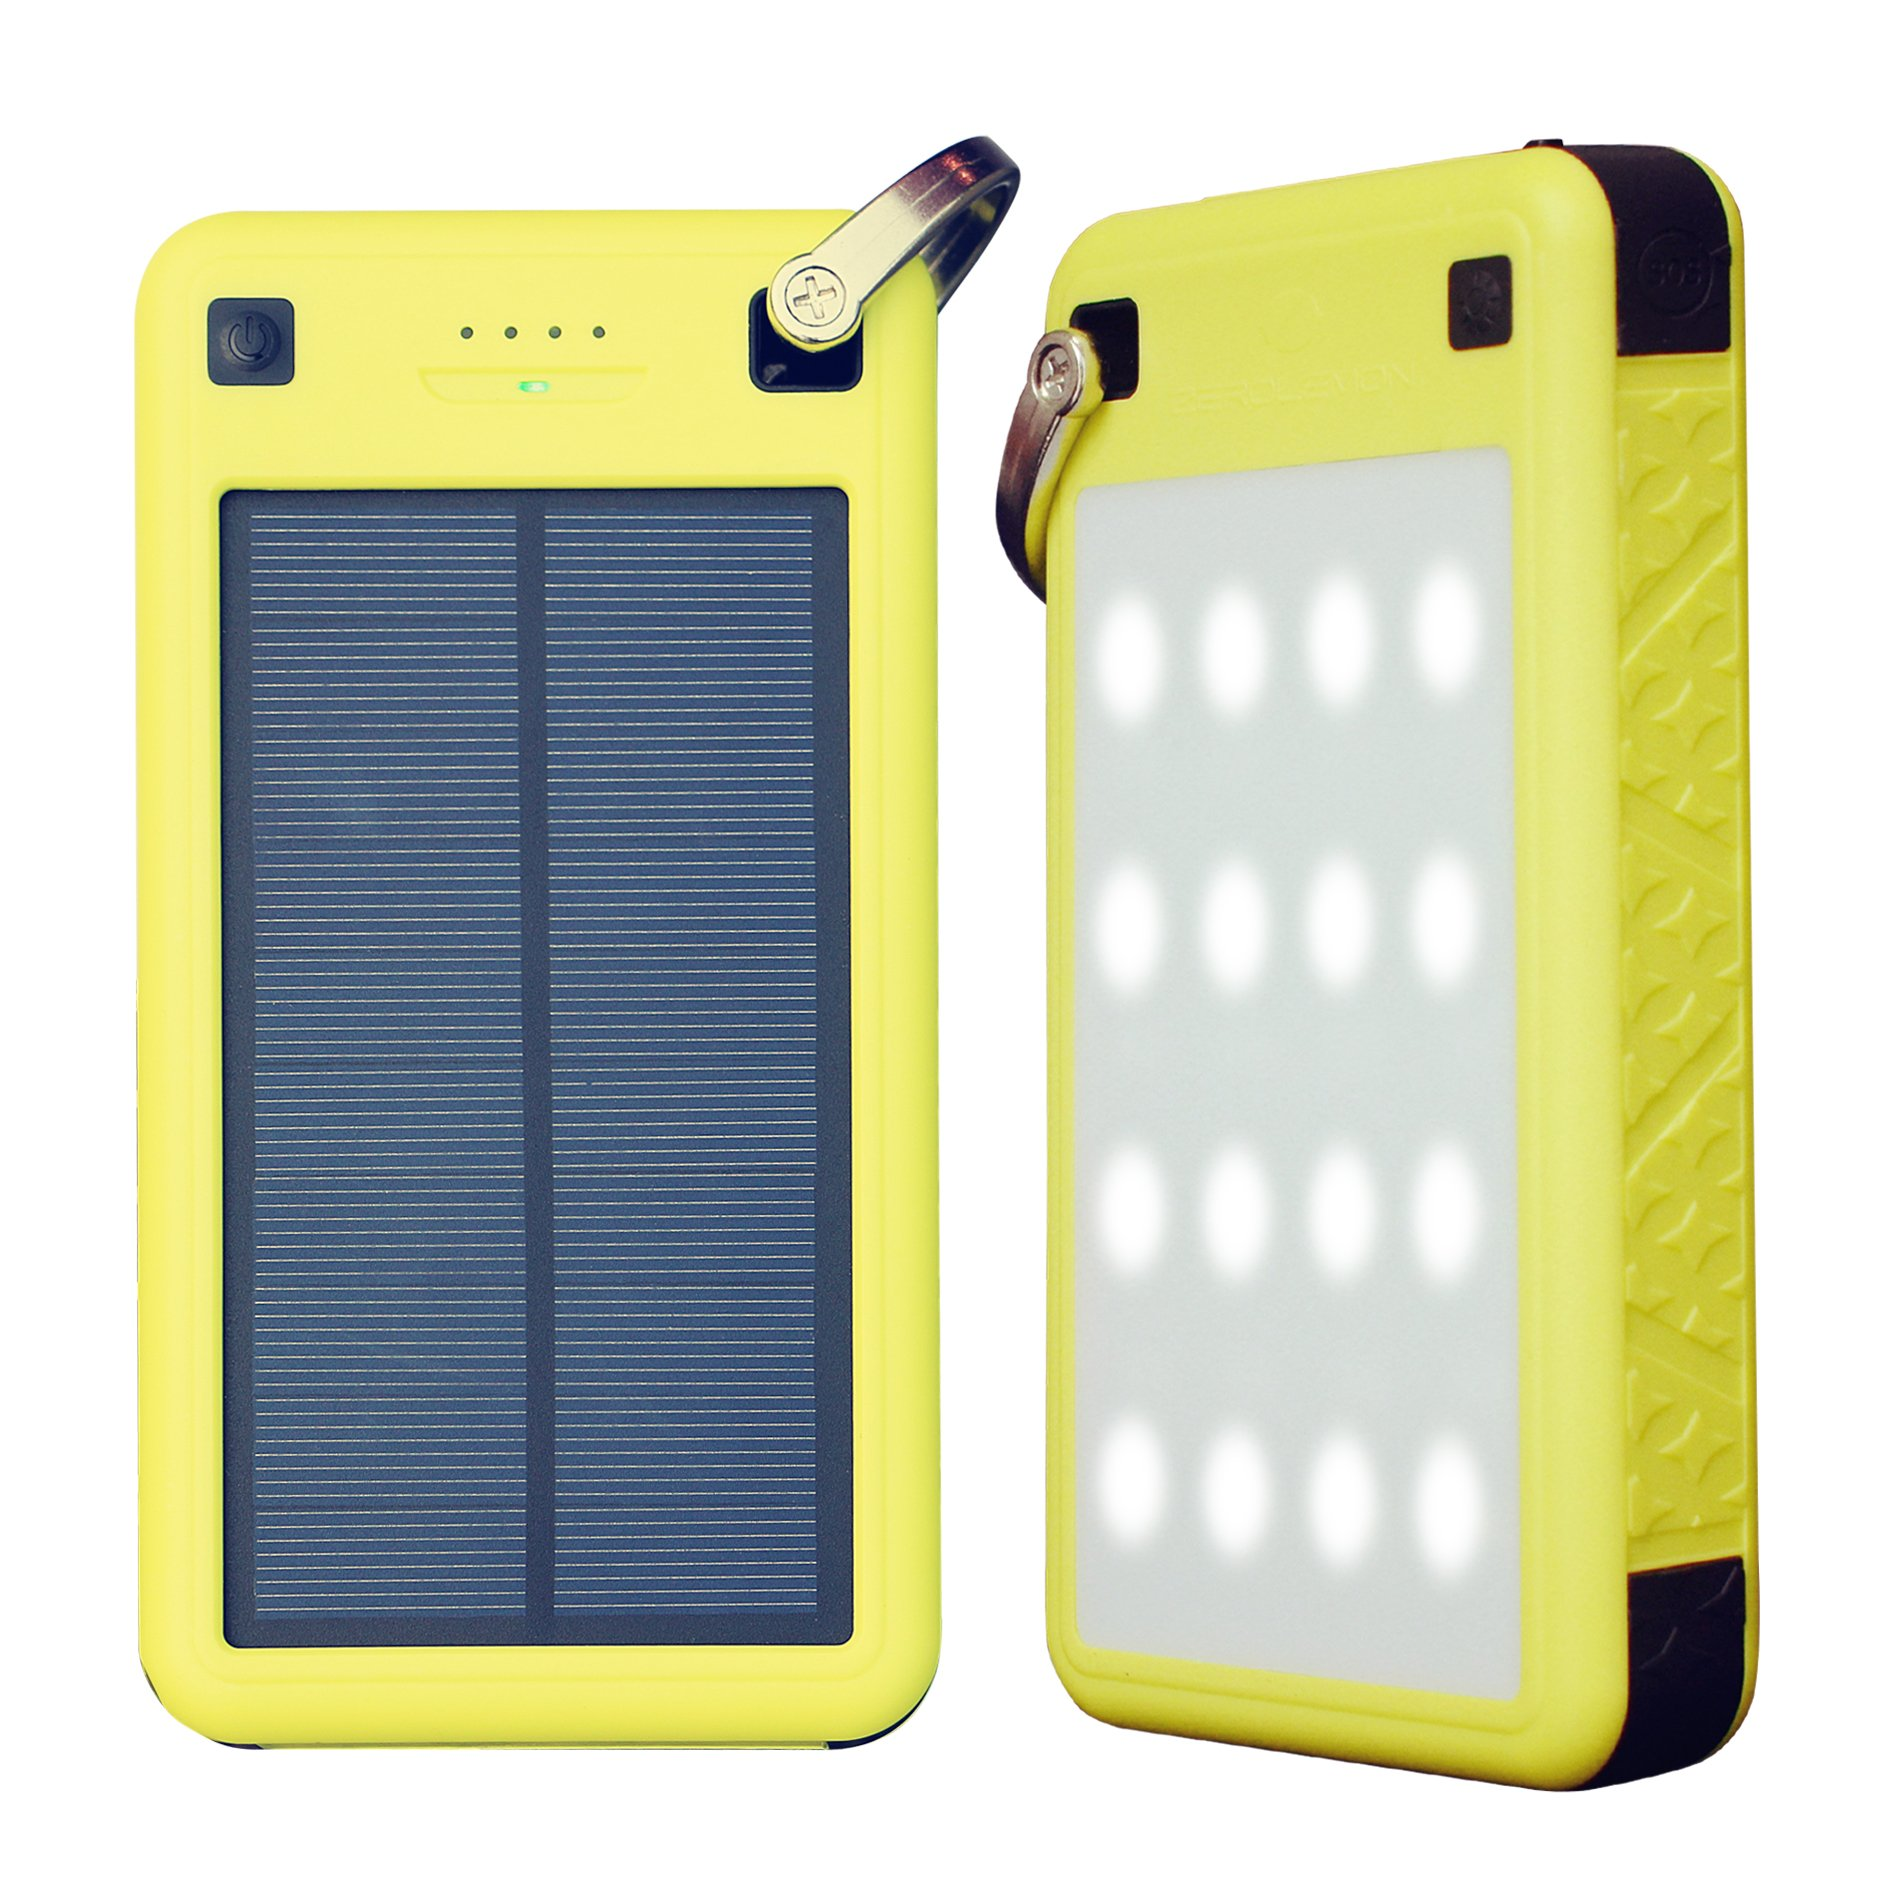 Solar Charger, ZeroLemon 26800mAh SolarJuice USB-C/QC3.0 Portable Solar Battery Charger with Waterproof/ Shockproof Solar Power Charger for iPhone, Samsung, Android phones, Windows phones and More by ZEROLEMON